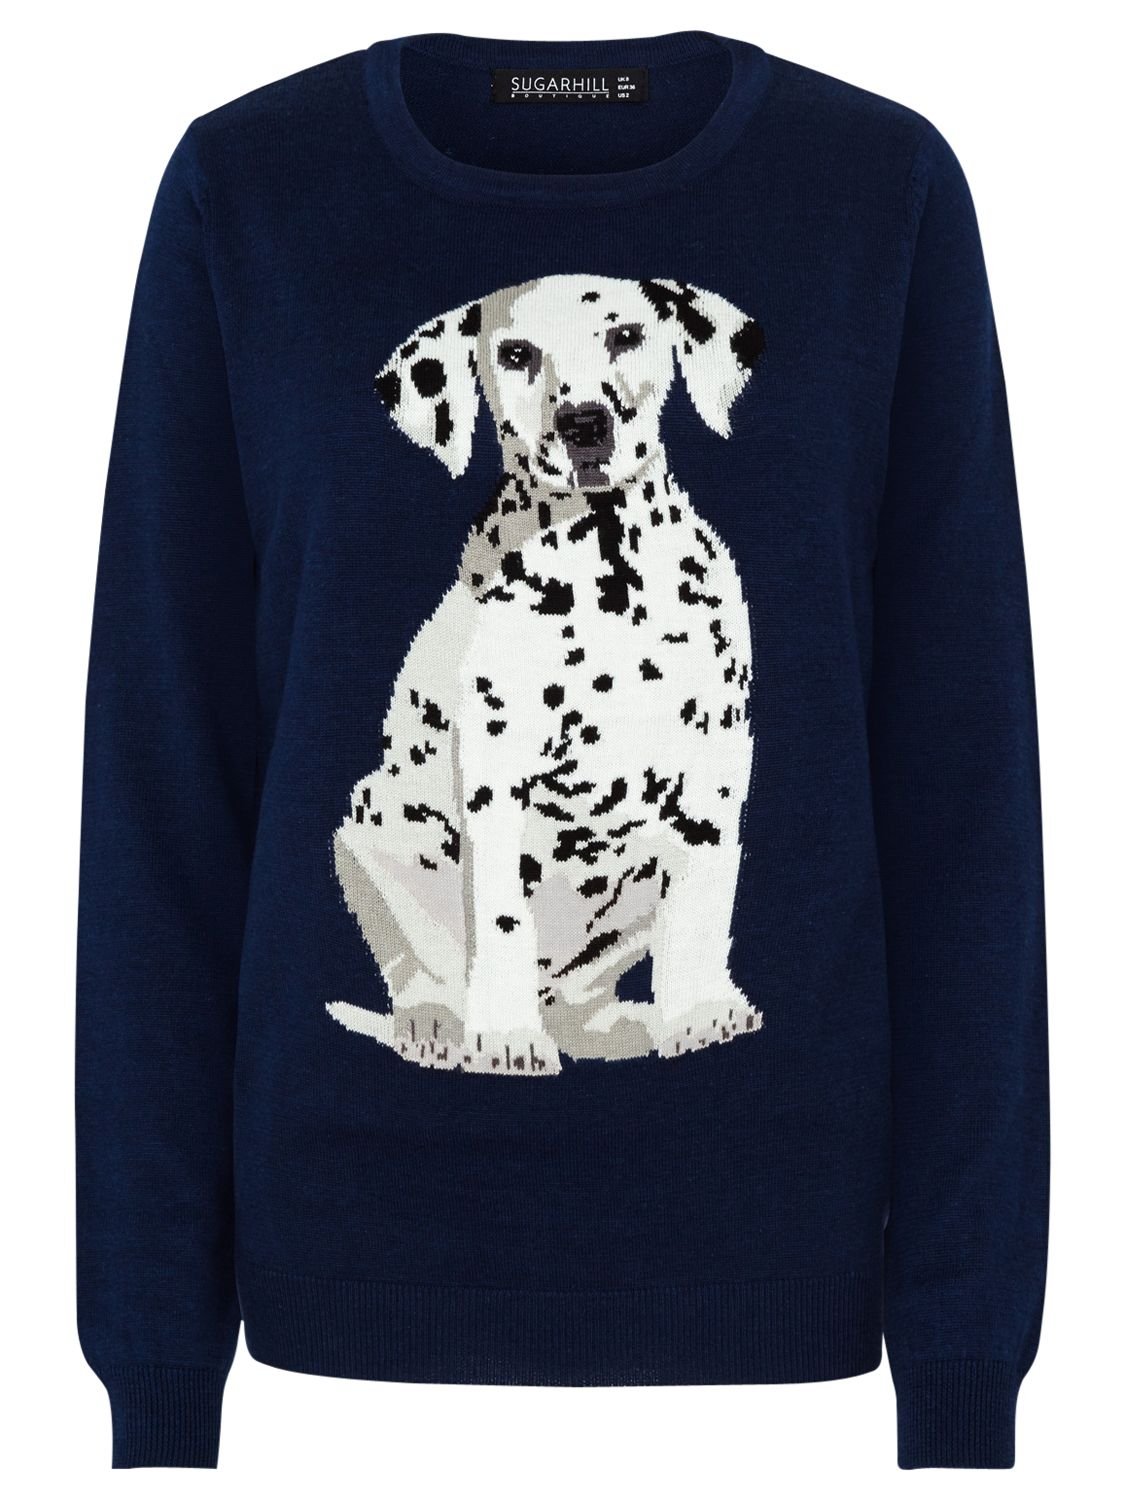 Sugarhill Boutique Nita Dalmation Jumper Navy Top Reviews Fashion Blithe Multi Stripes Find The Low Prices On Uk Cyber Monday Compare Ratings And Examine Clothing Shops To Best Deals Discount Offers At